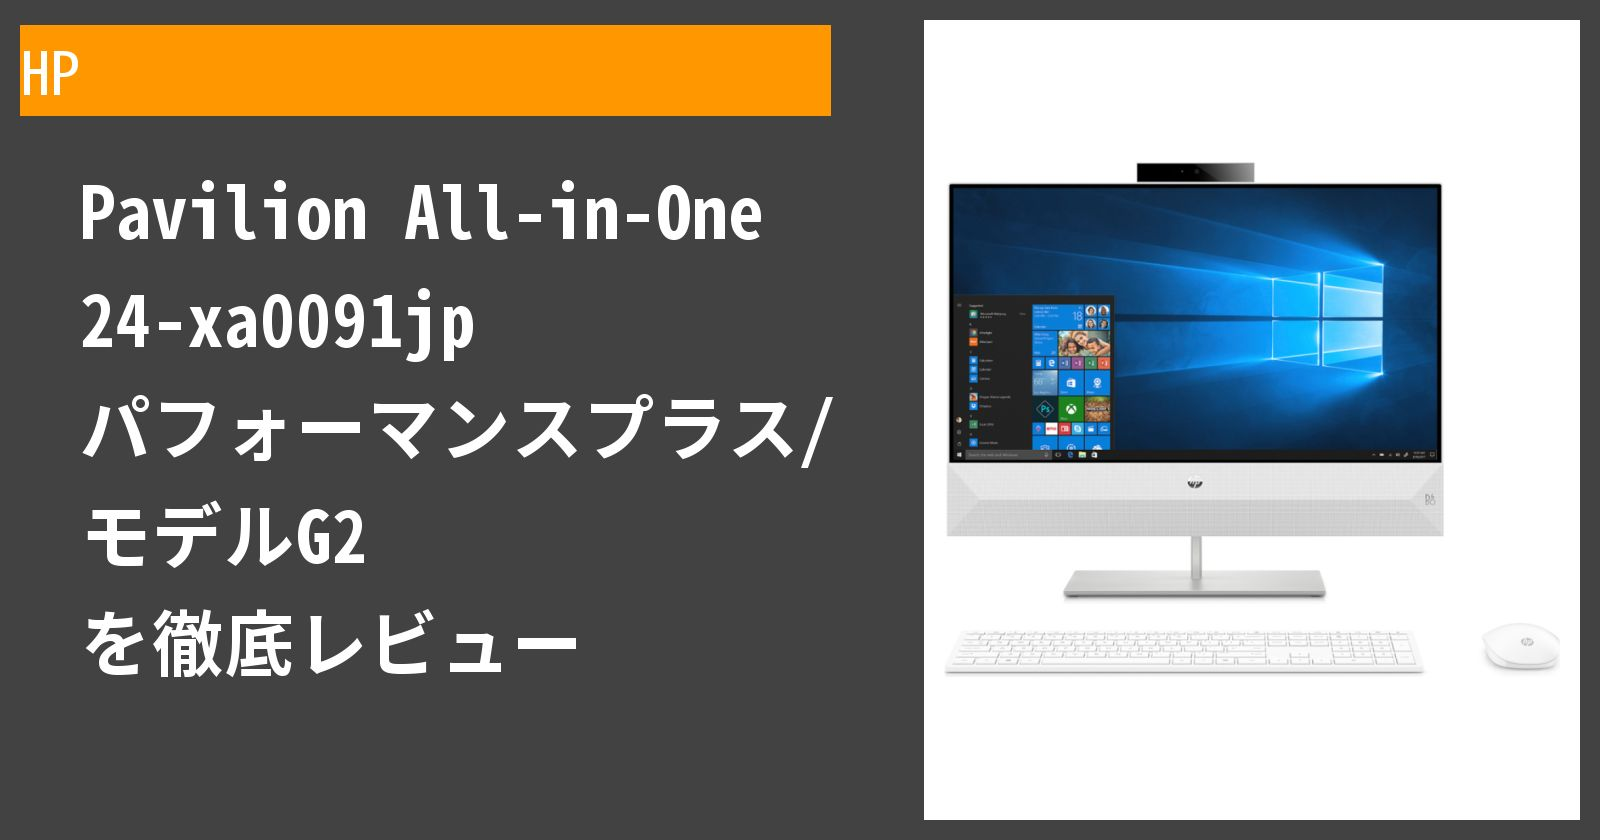 Pavilion All-in-One 24-xa0091jp パフォーマンスプラス/モデルG2を徹底評価